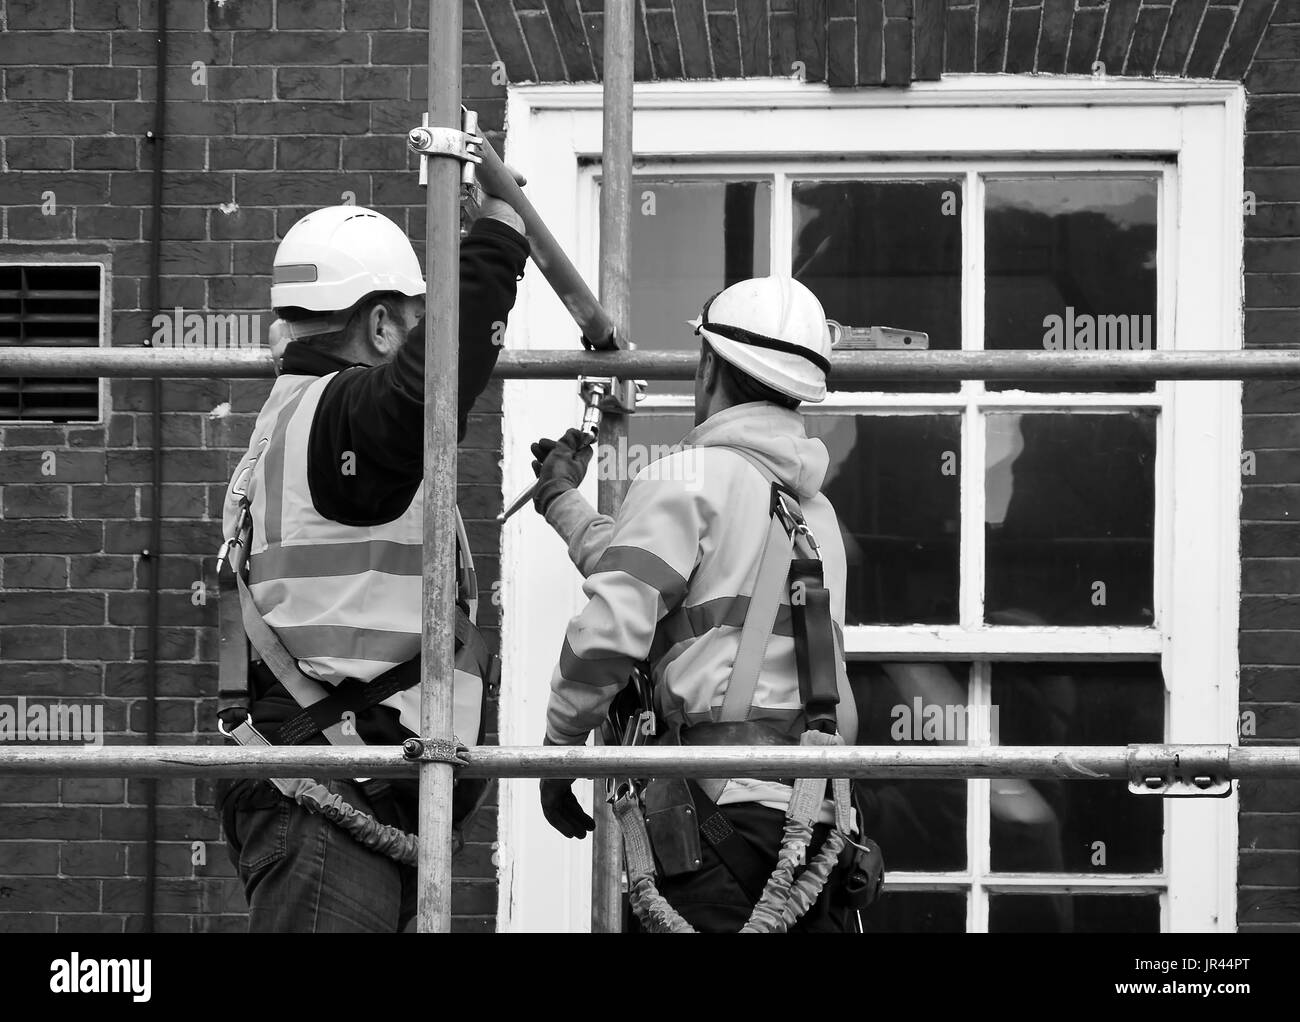 Two workers assembling scaffolding on city building - Stock Image